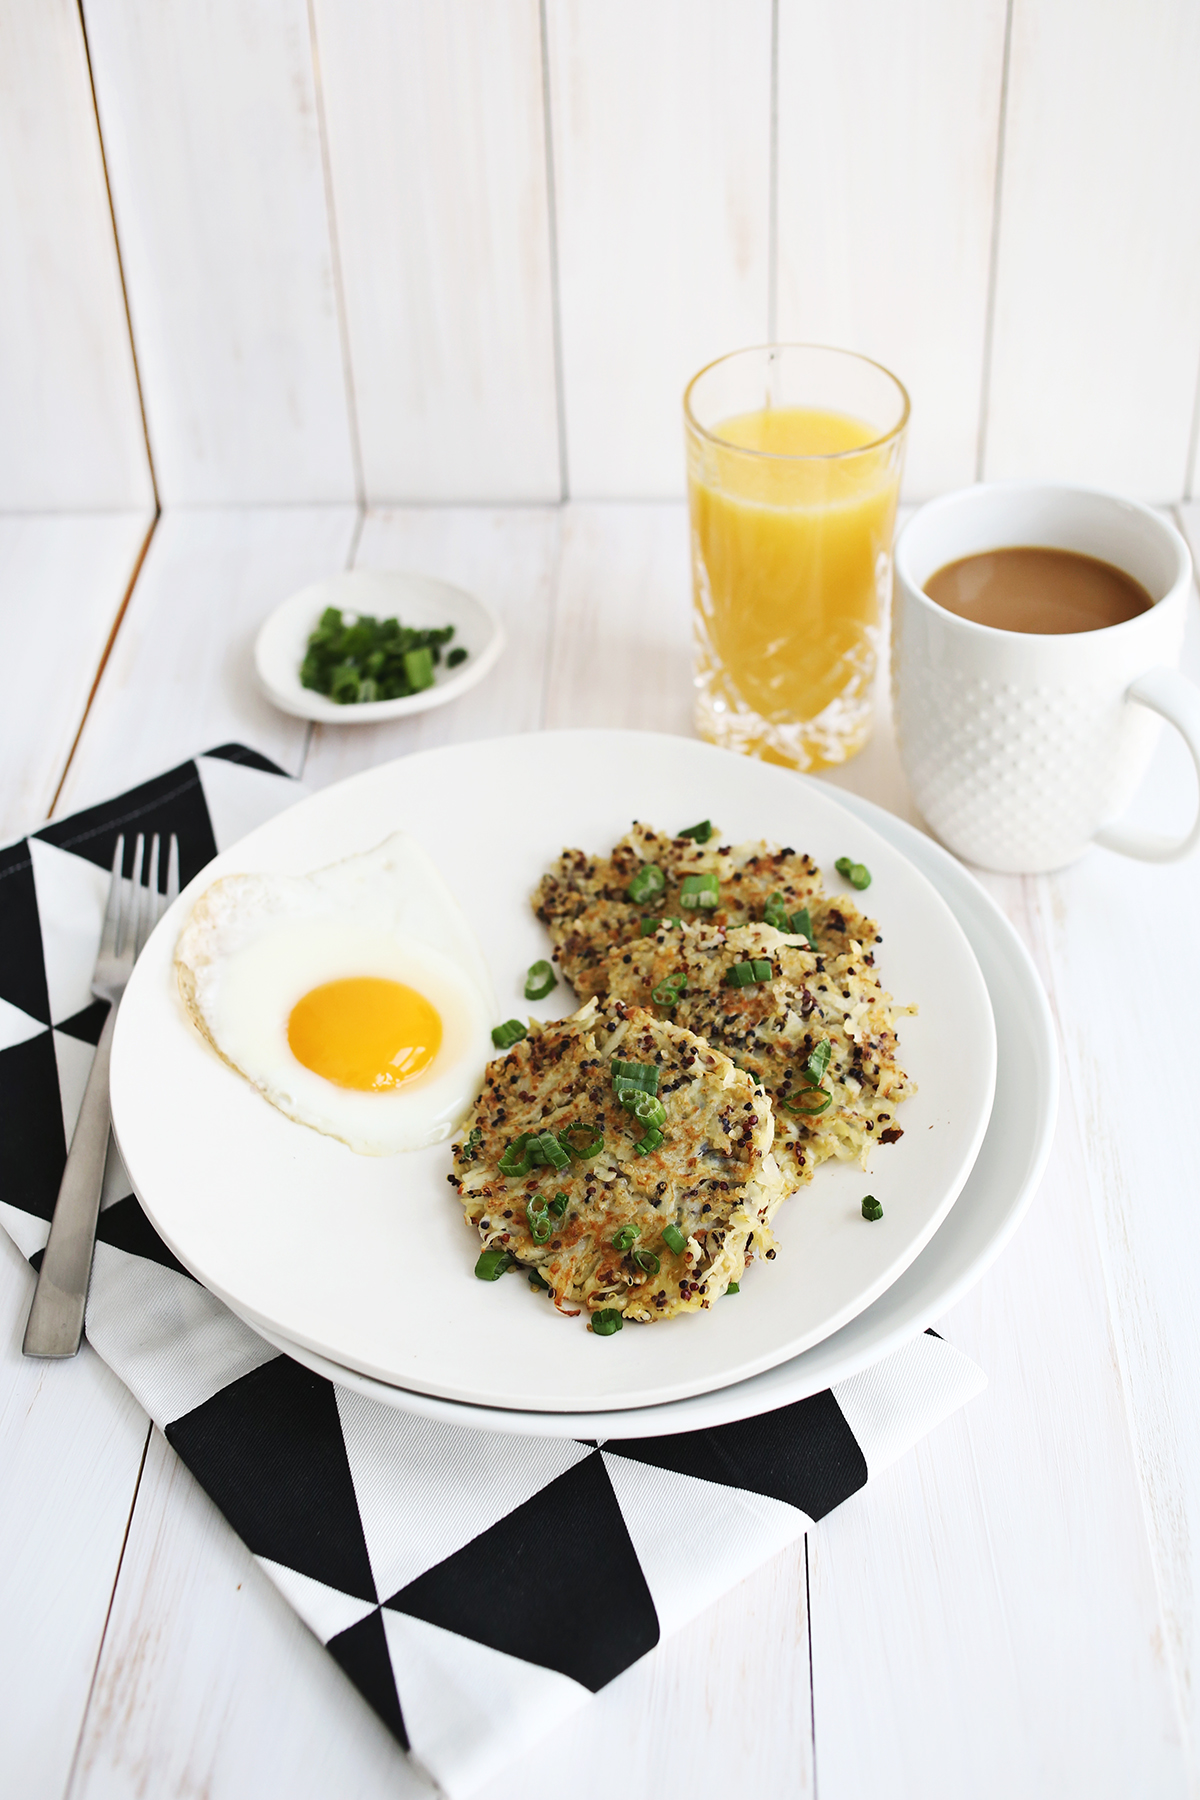 quinoa breakfast hash browns serves 2 adapted from quinoa 365